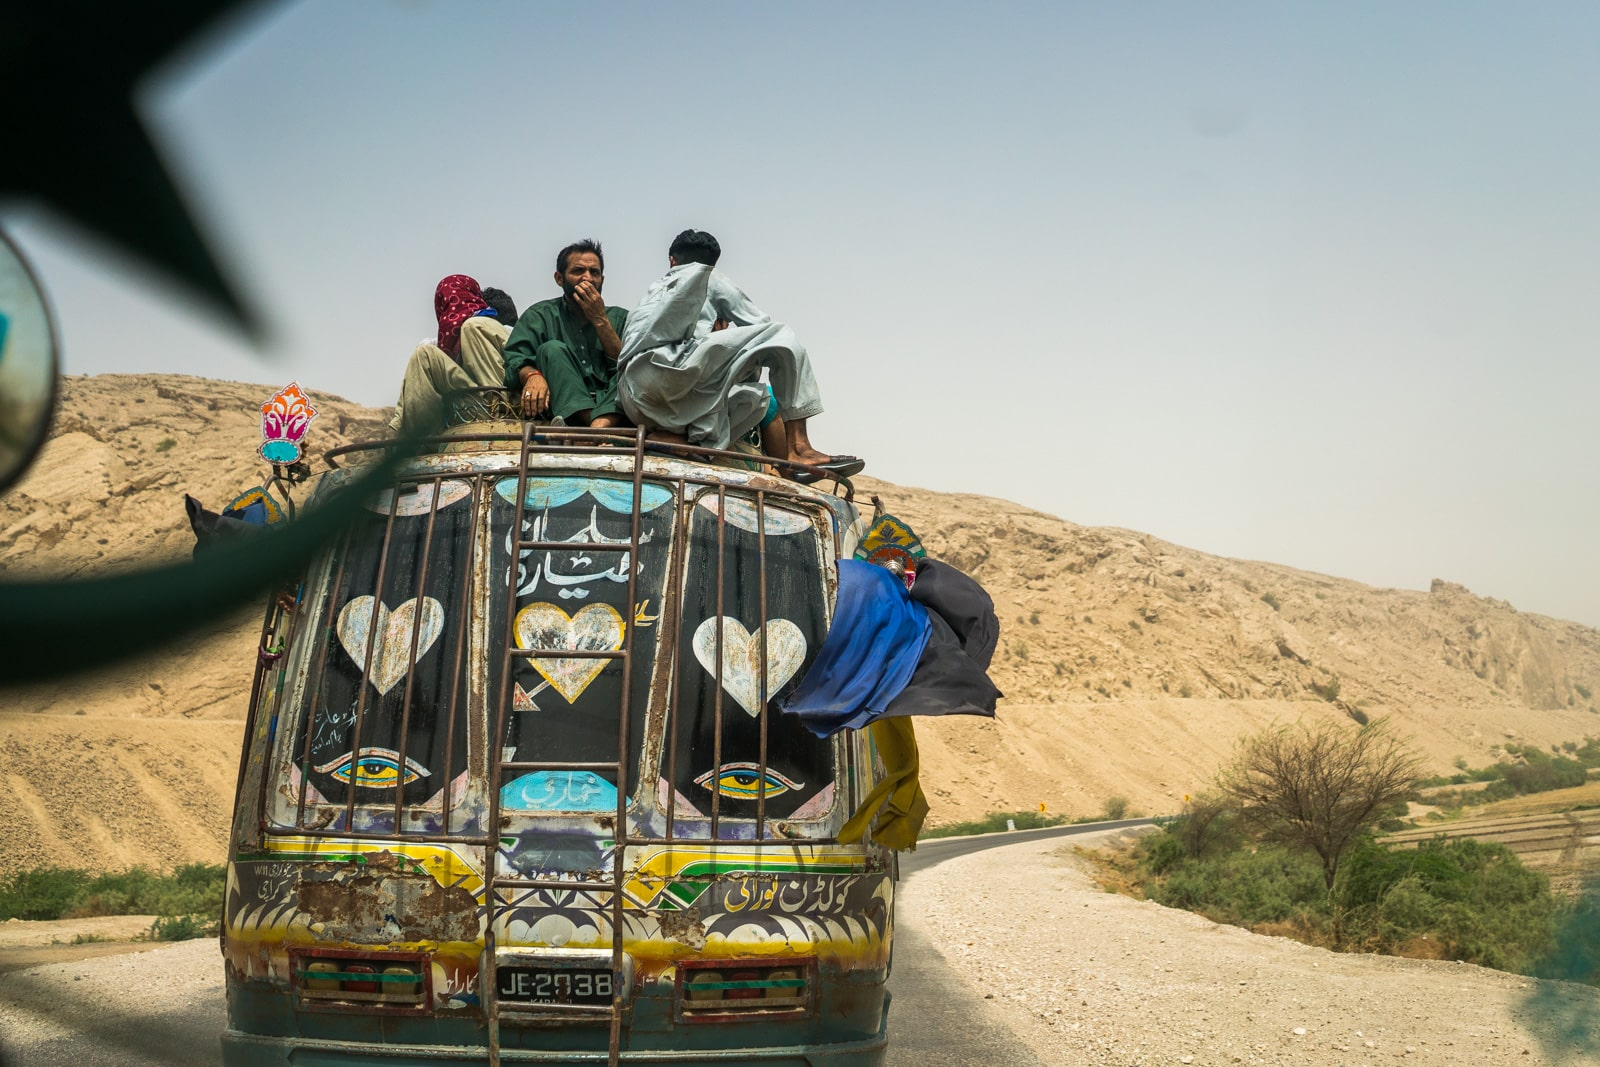 The Urs of Lal Shahbaz Qalandar in Sehwan, Pakistan - Men riding on top of a bus - Lost With Purpose travel blog